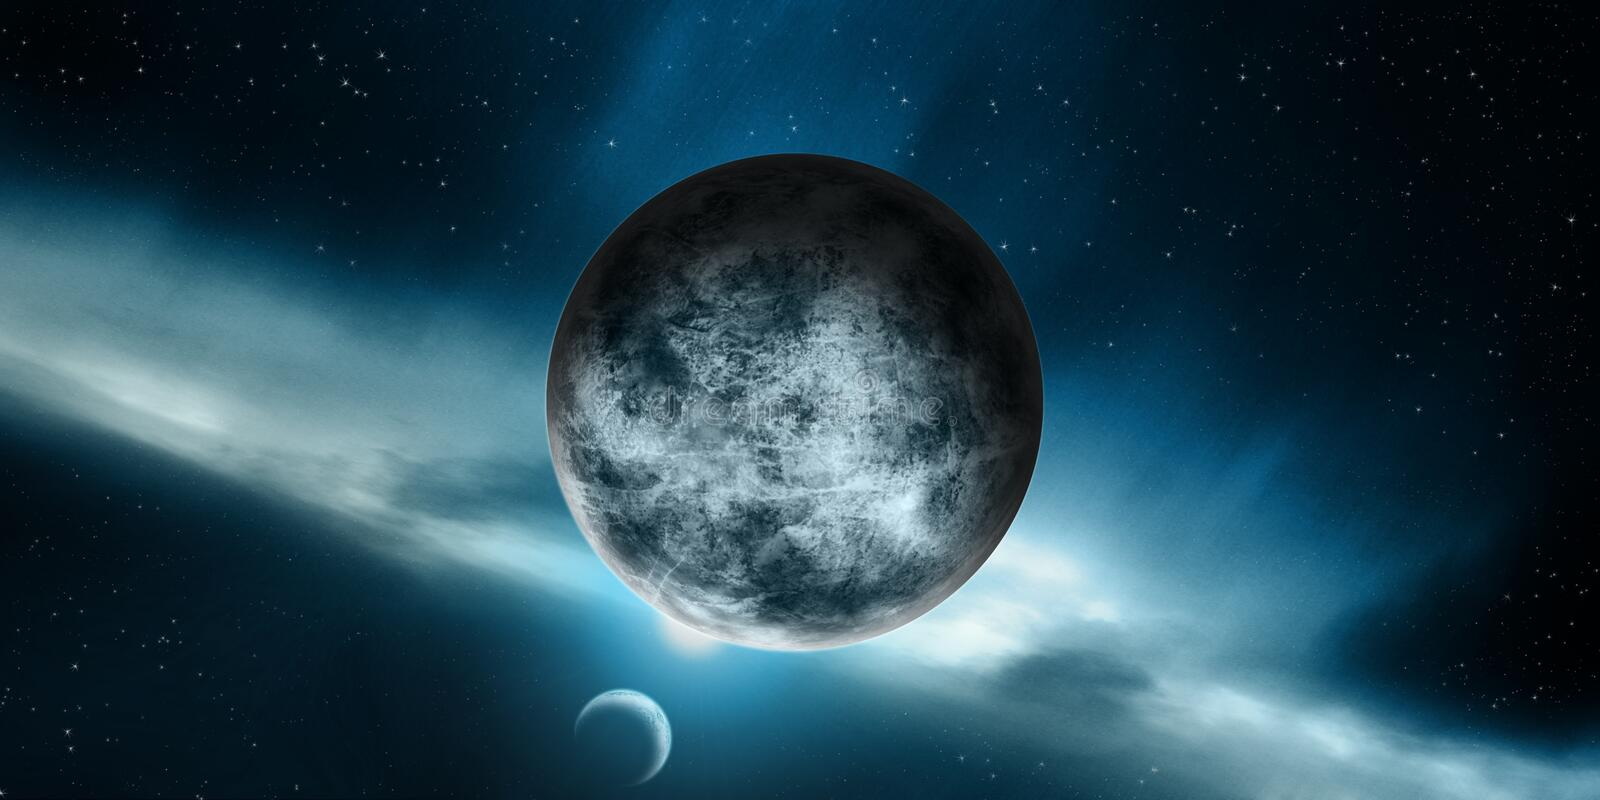 Atmosphere, Planet, Astronomical Object, Universe royalty free stock image